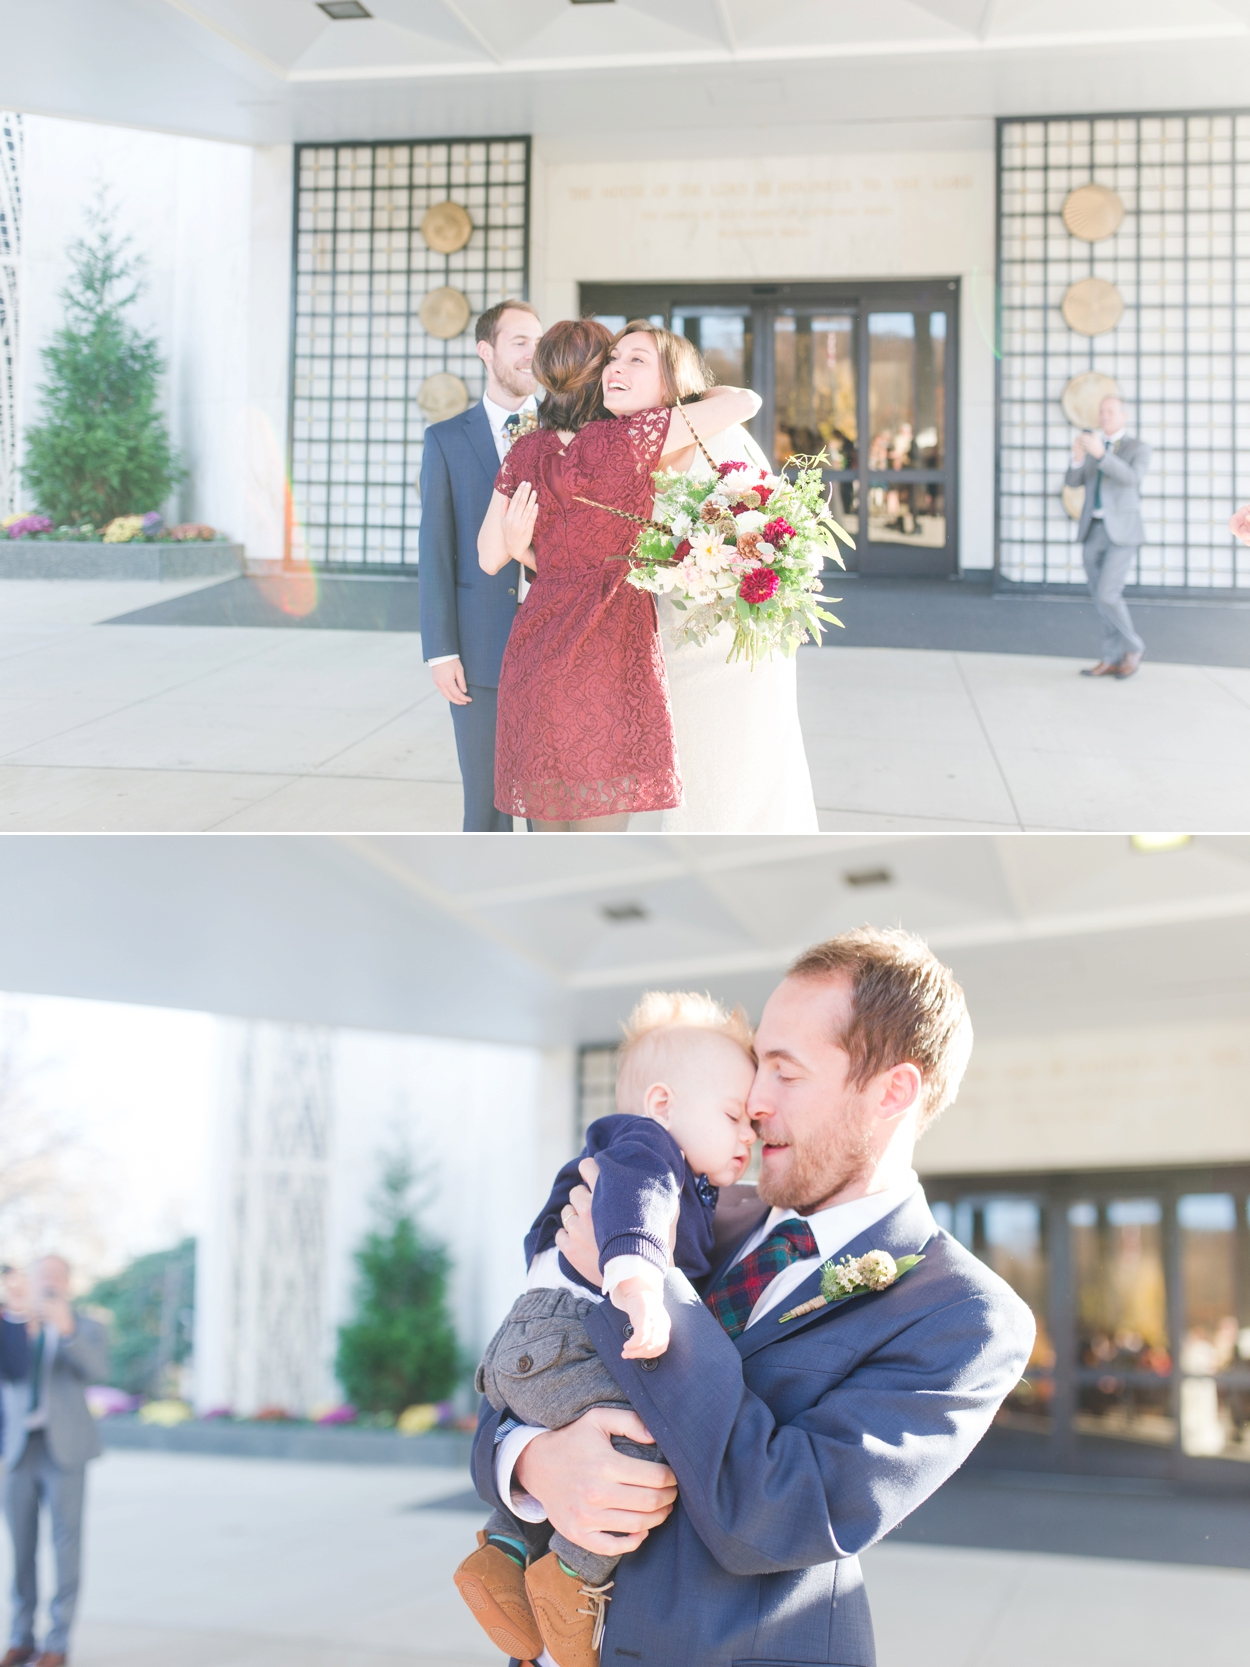 Romantic Fall Mormon Wedding at LDS Temple in DC by Katie Vee Photography